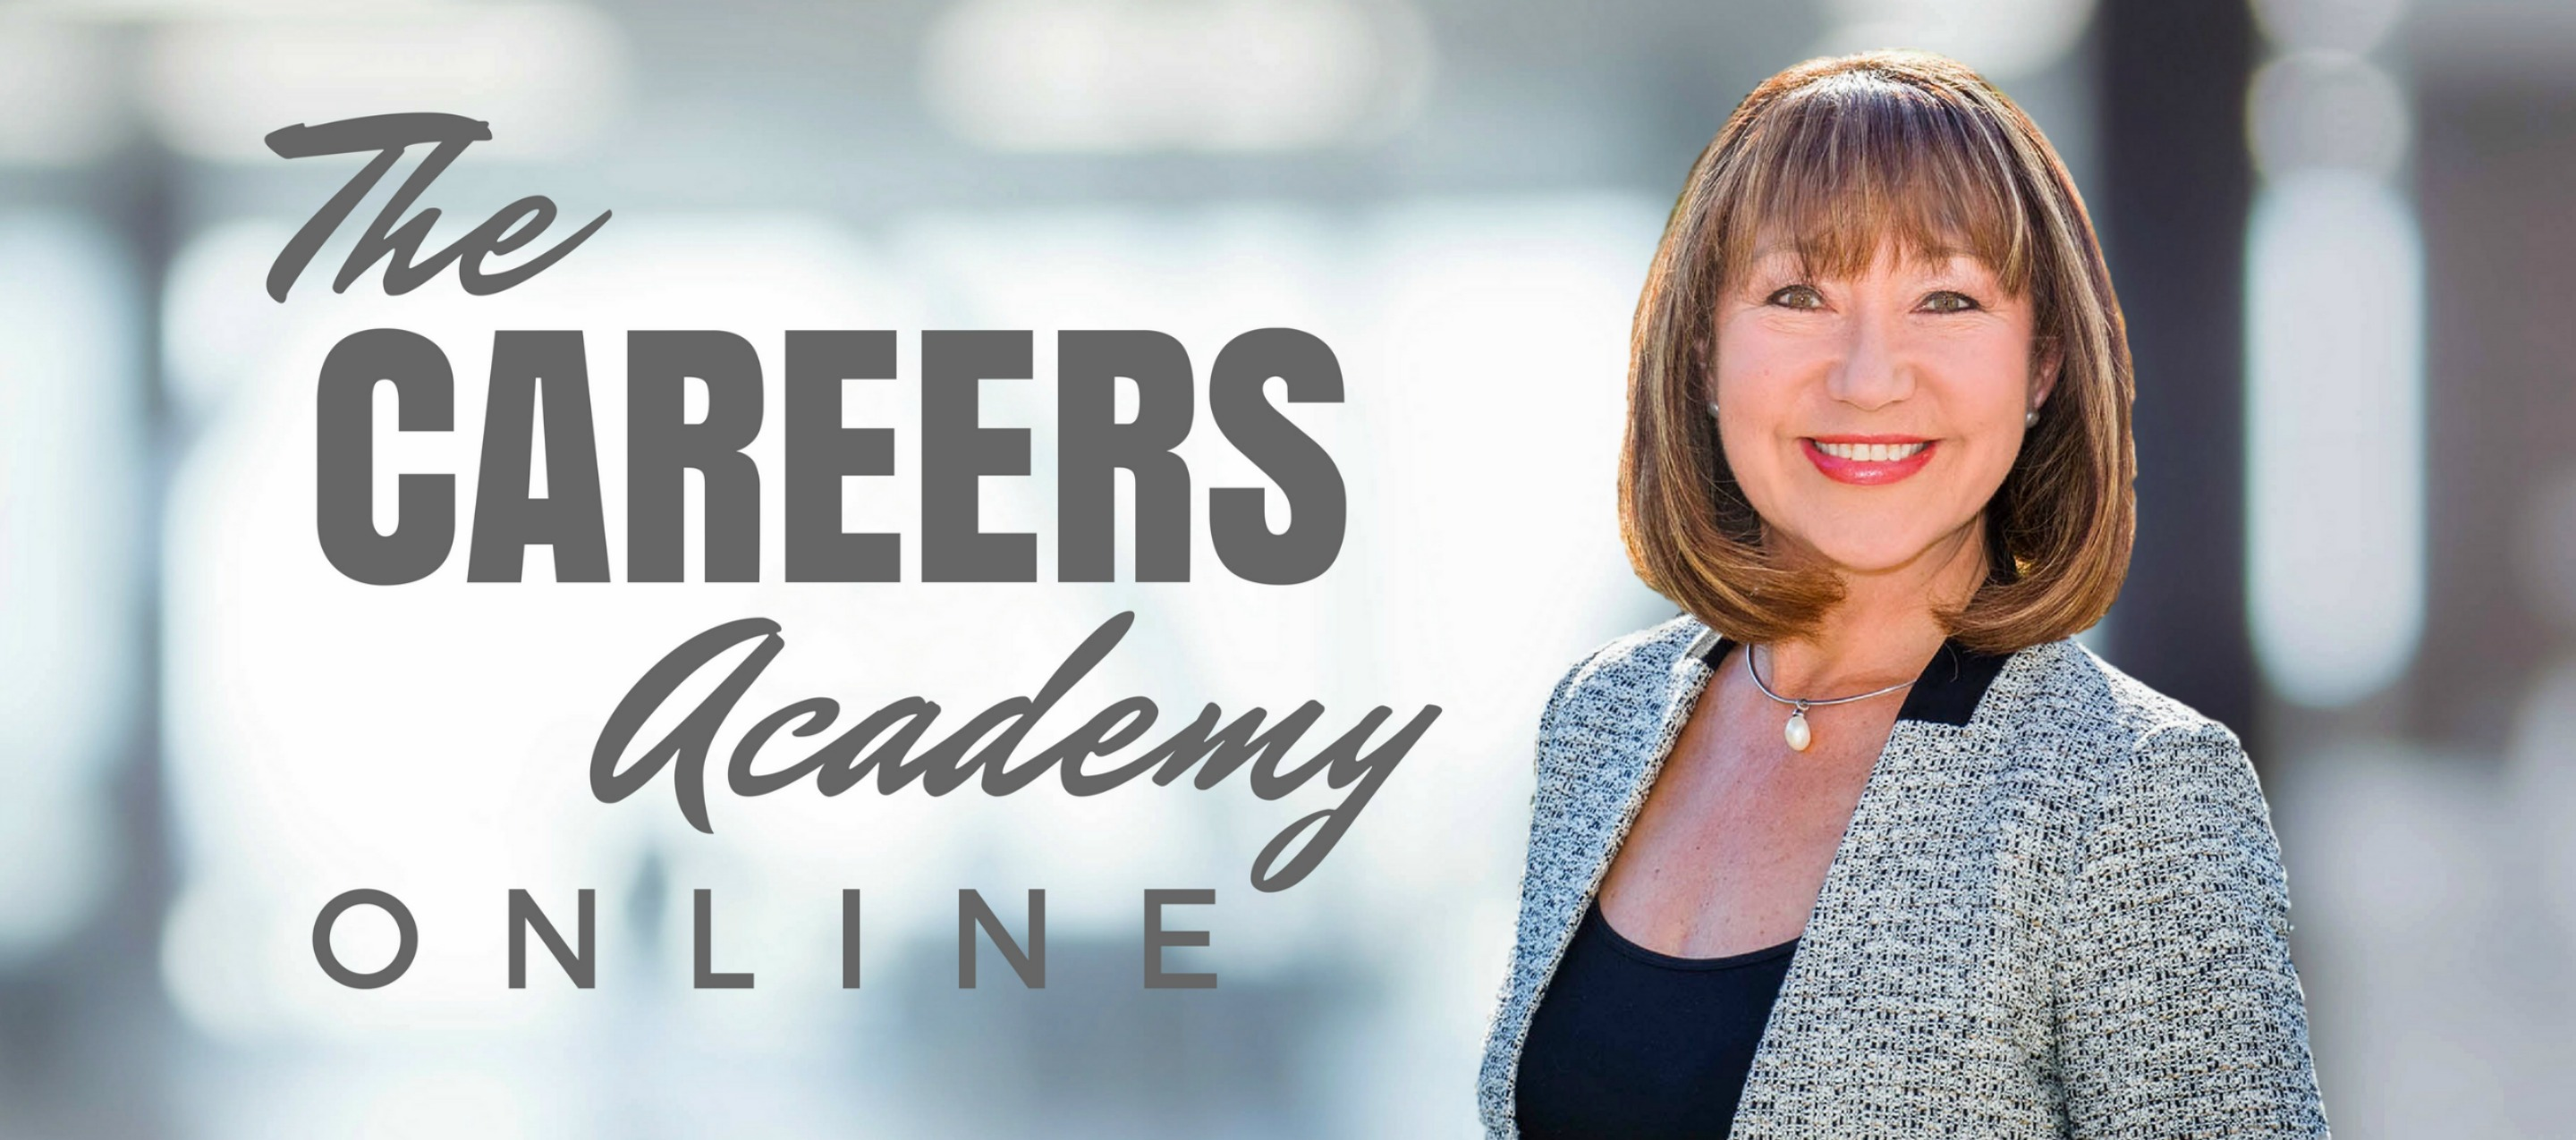 Jane Jackson, the careers academy, careers, career, career coach, how to get a job